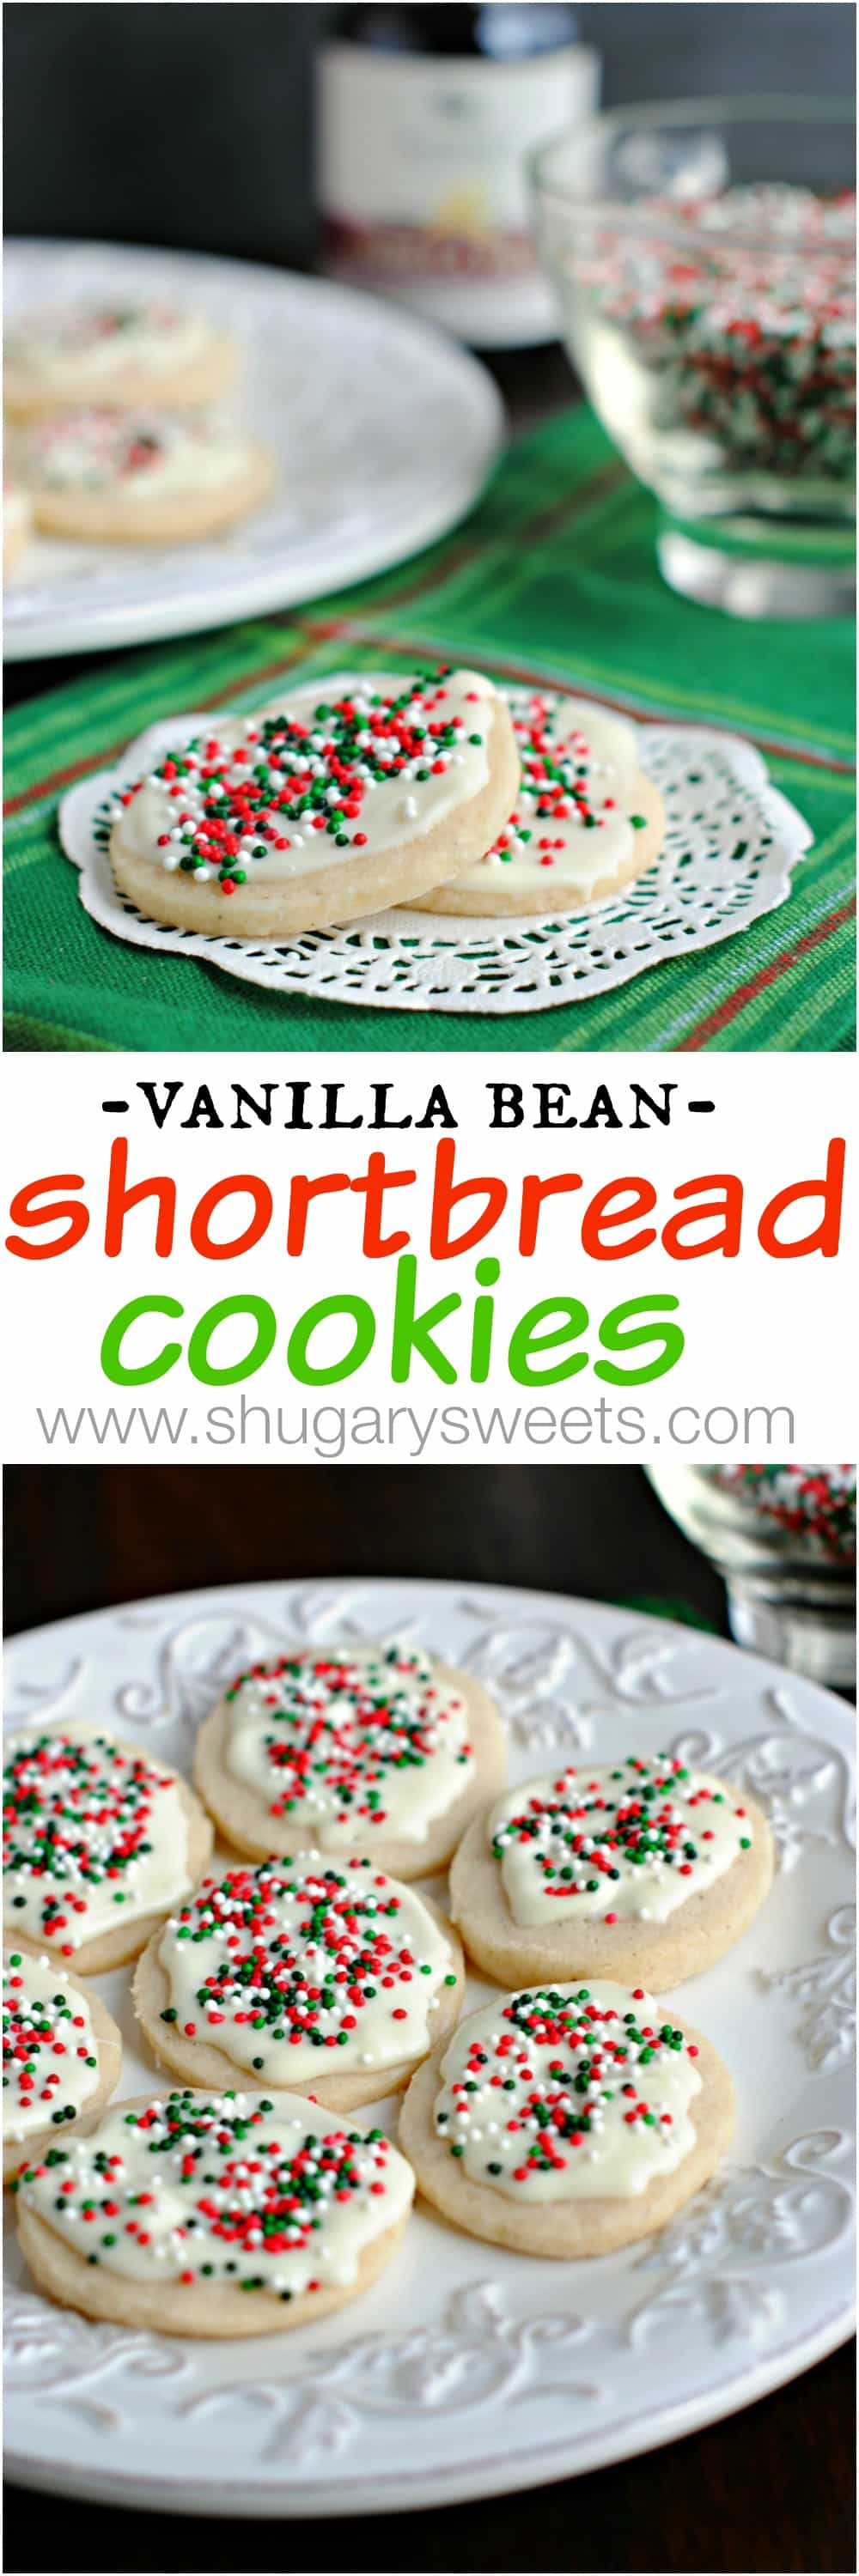 Vanilla Bean Shortbread Cookies: classy holiday cookies decked out for ...